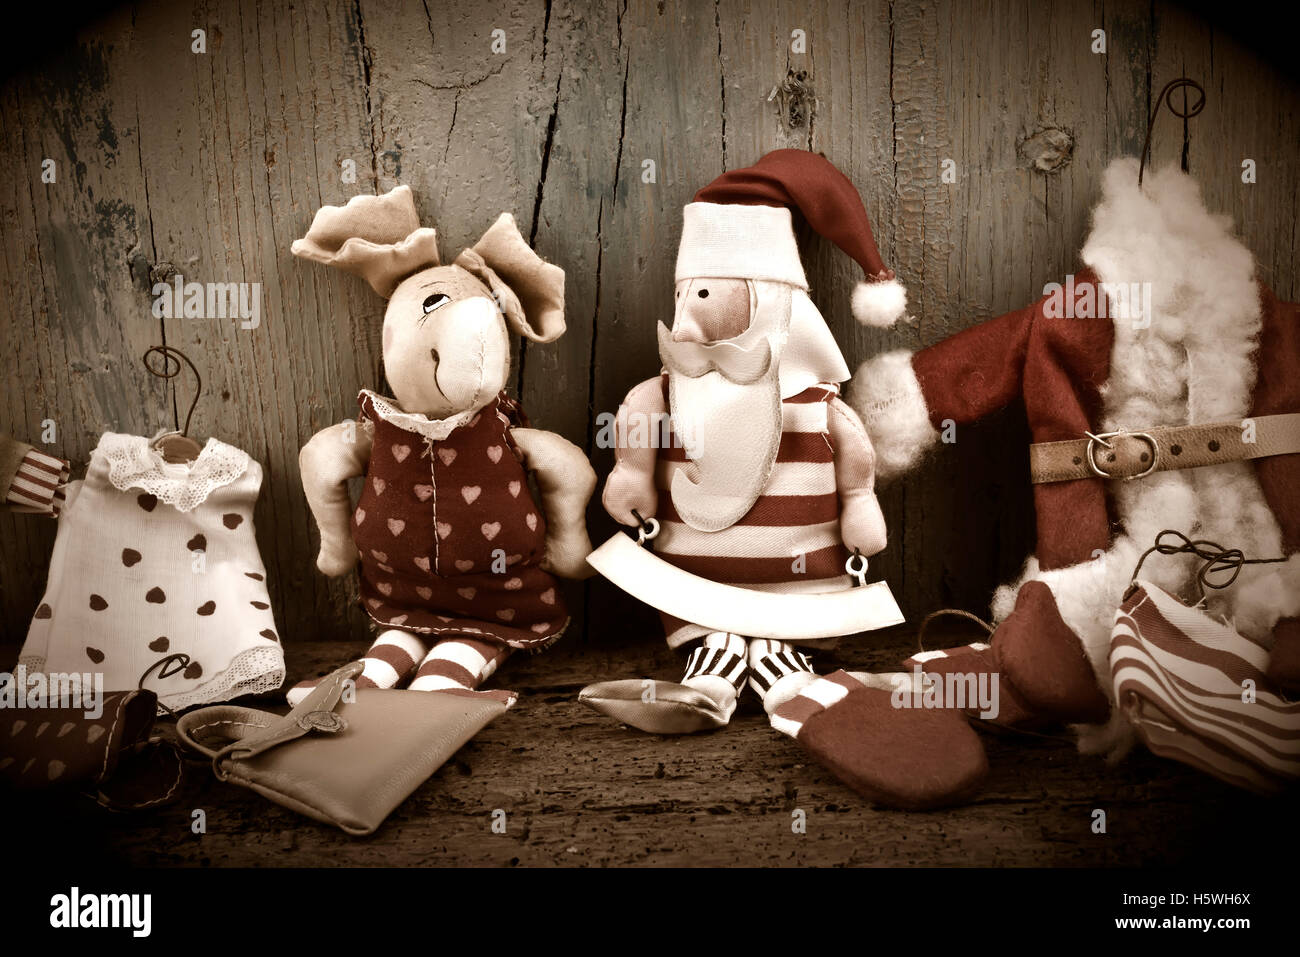 Santa Claus and Rudolf, old rag dolls on wooden background for Christmas Cards - Stock Image